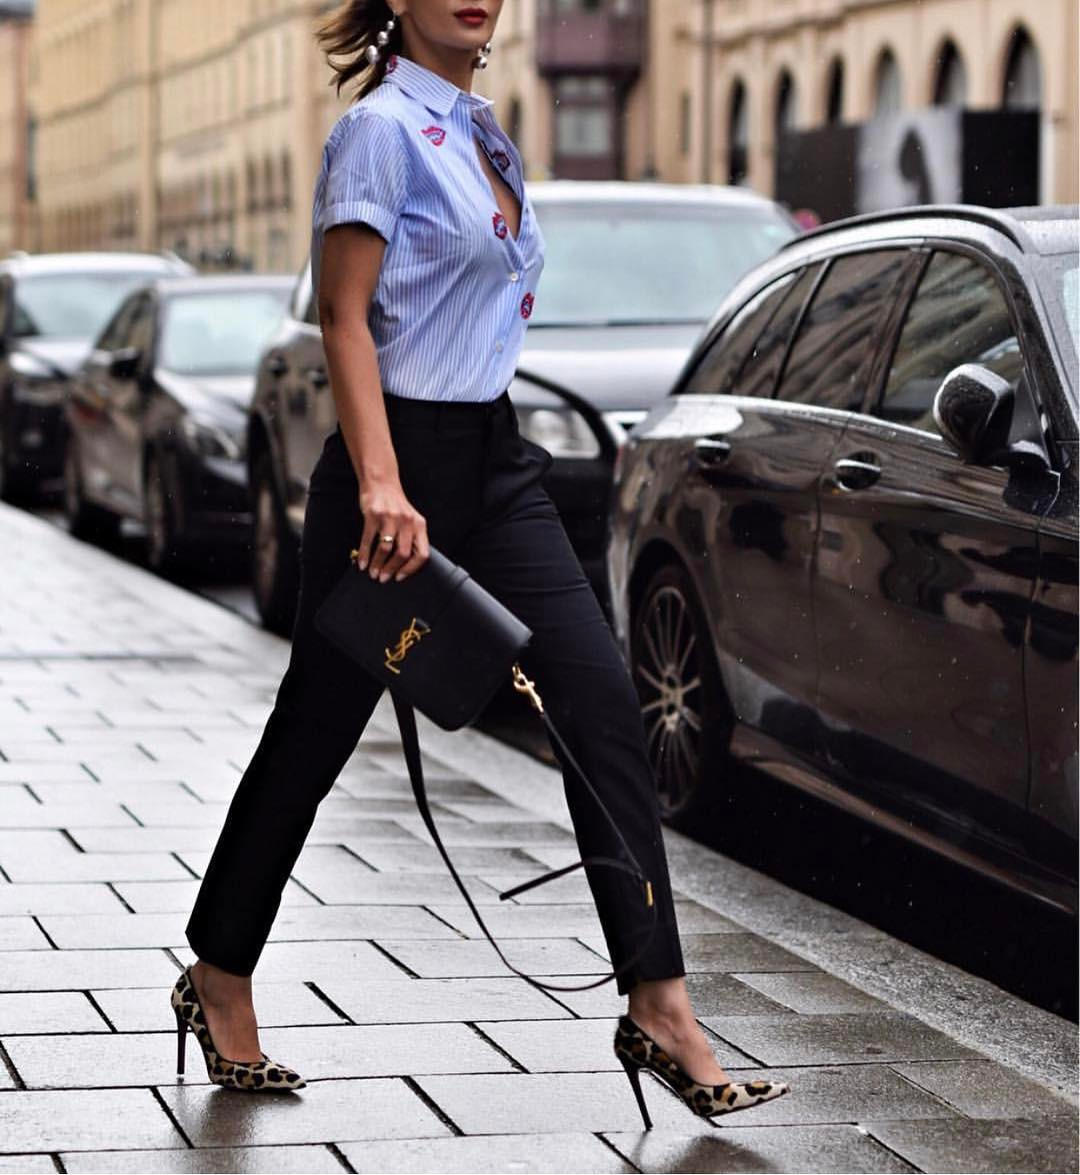 Pinstripe Shirt With Black Pants And Leopard Pumps: Office Style Look 2020